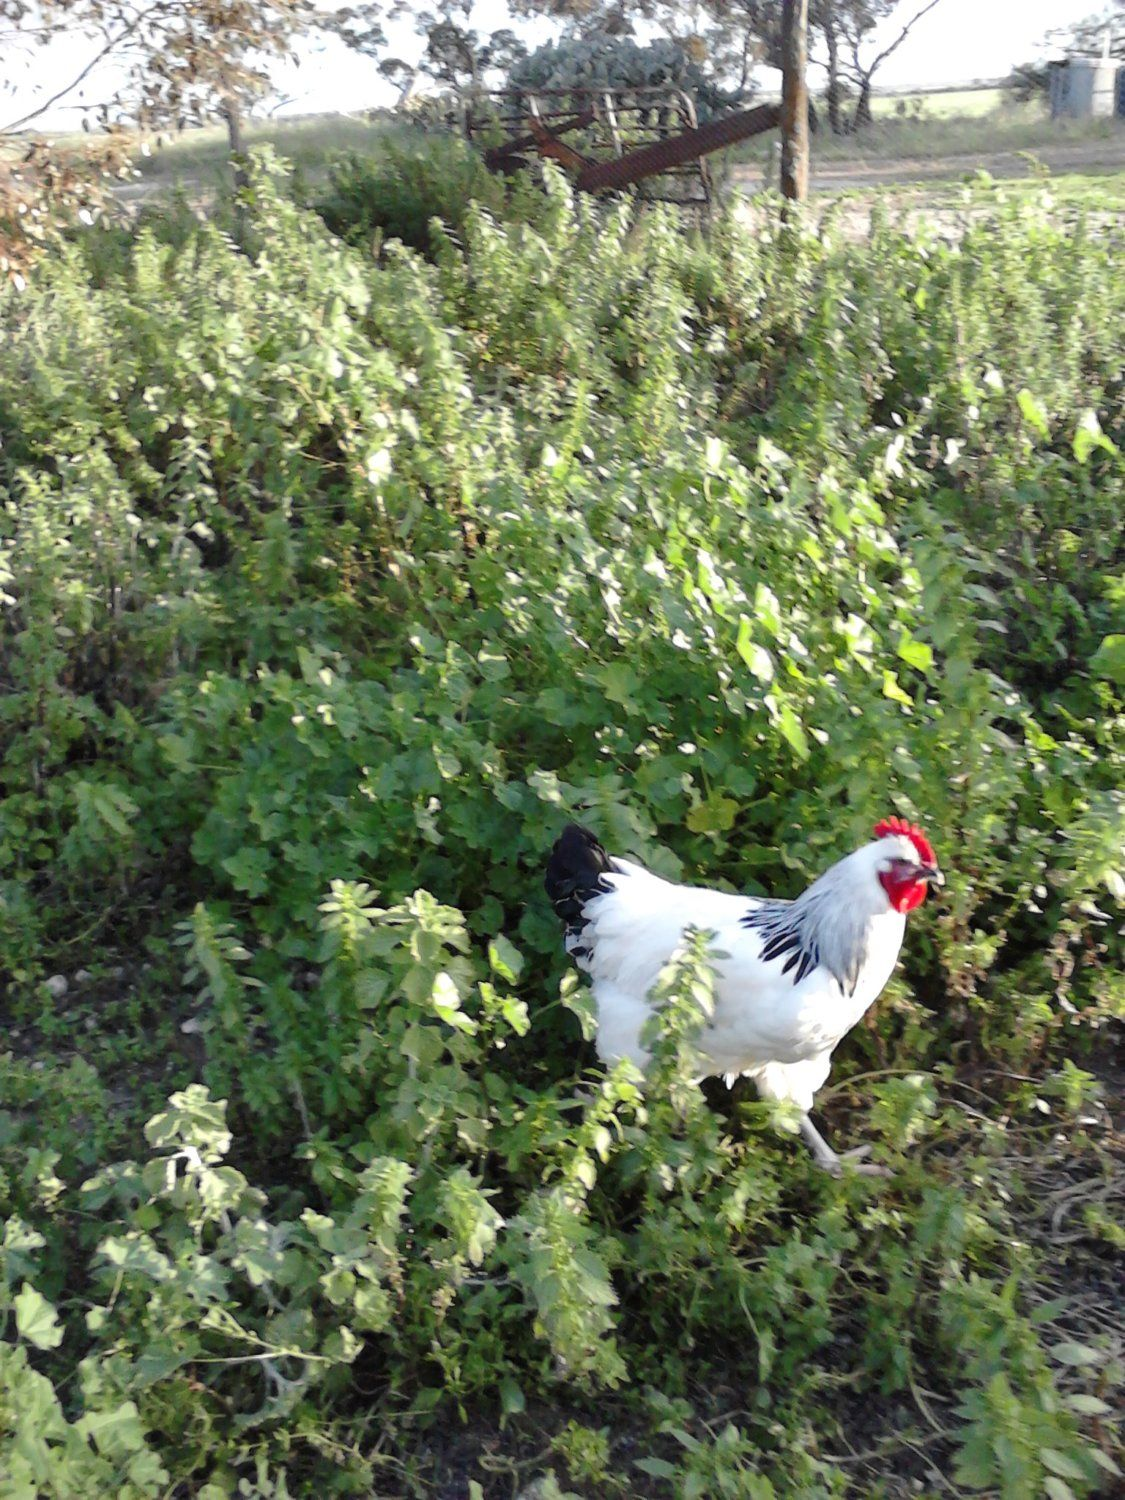 Pure Sussex Roosters under 1 year, 2 left Eyre Peninsula, Big Birds! Under 6 months-ish This pic 3 months.